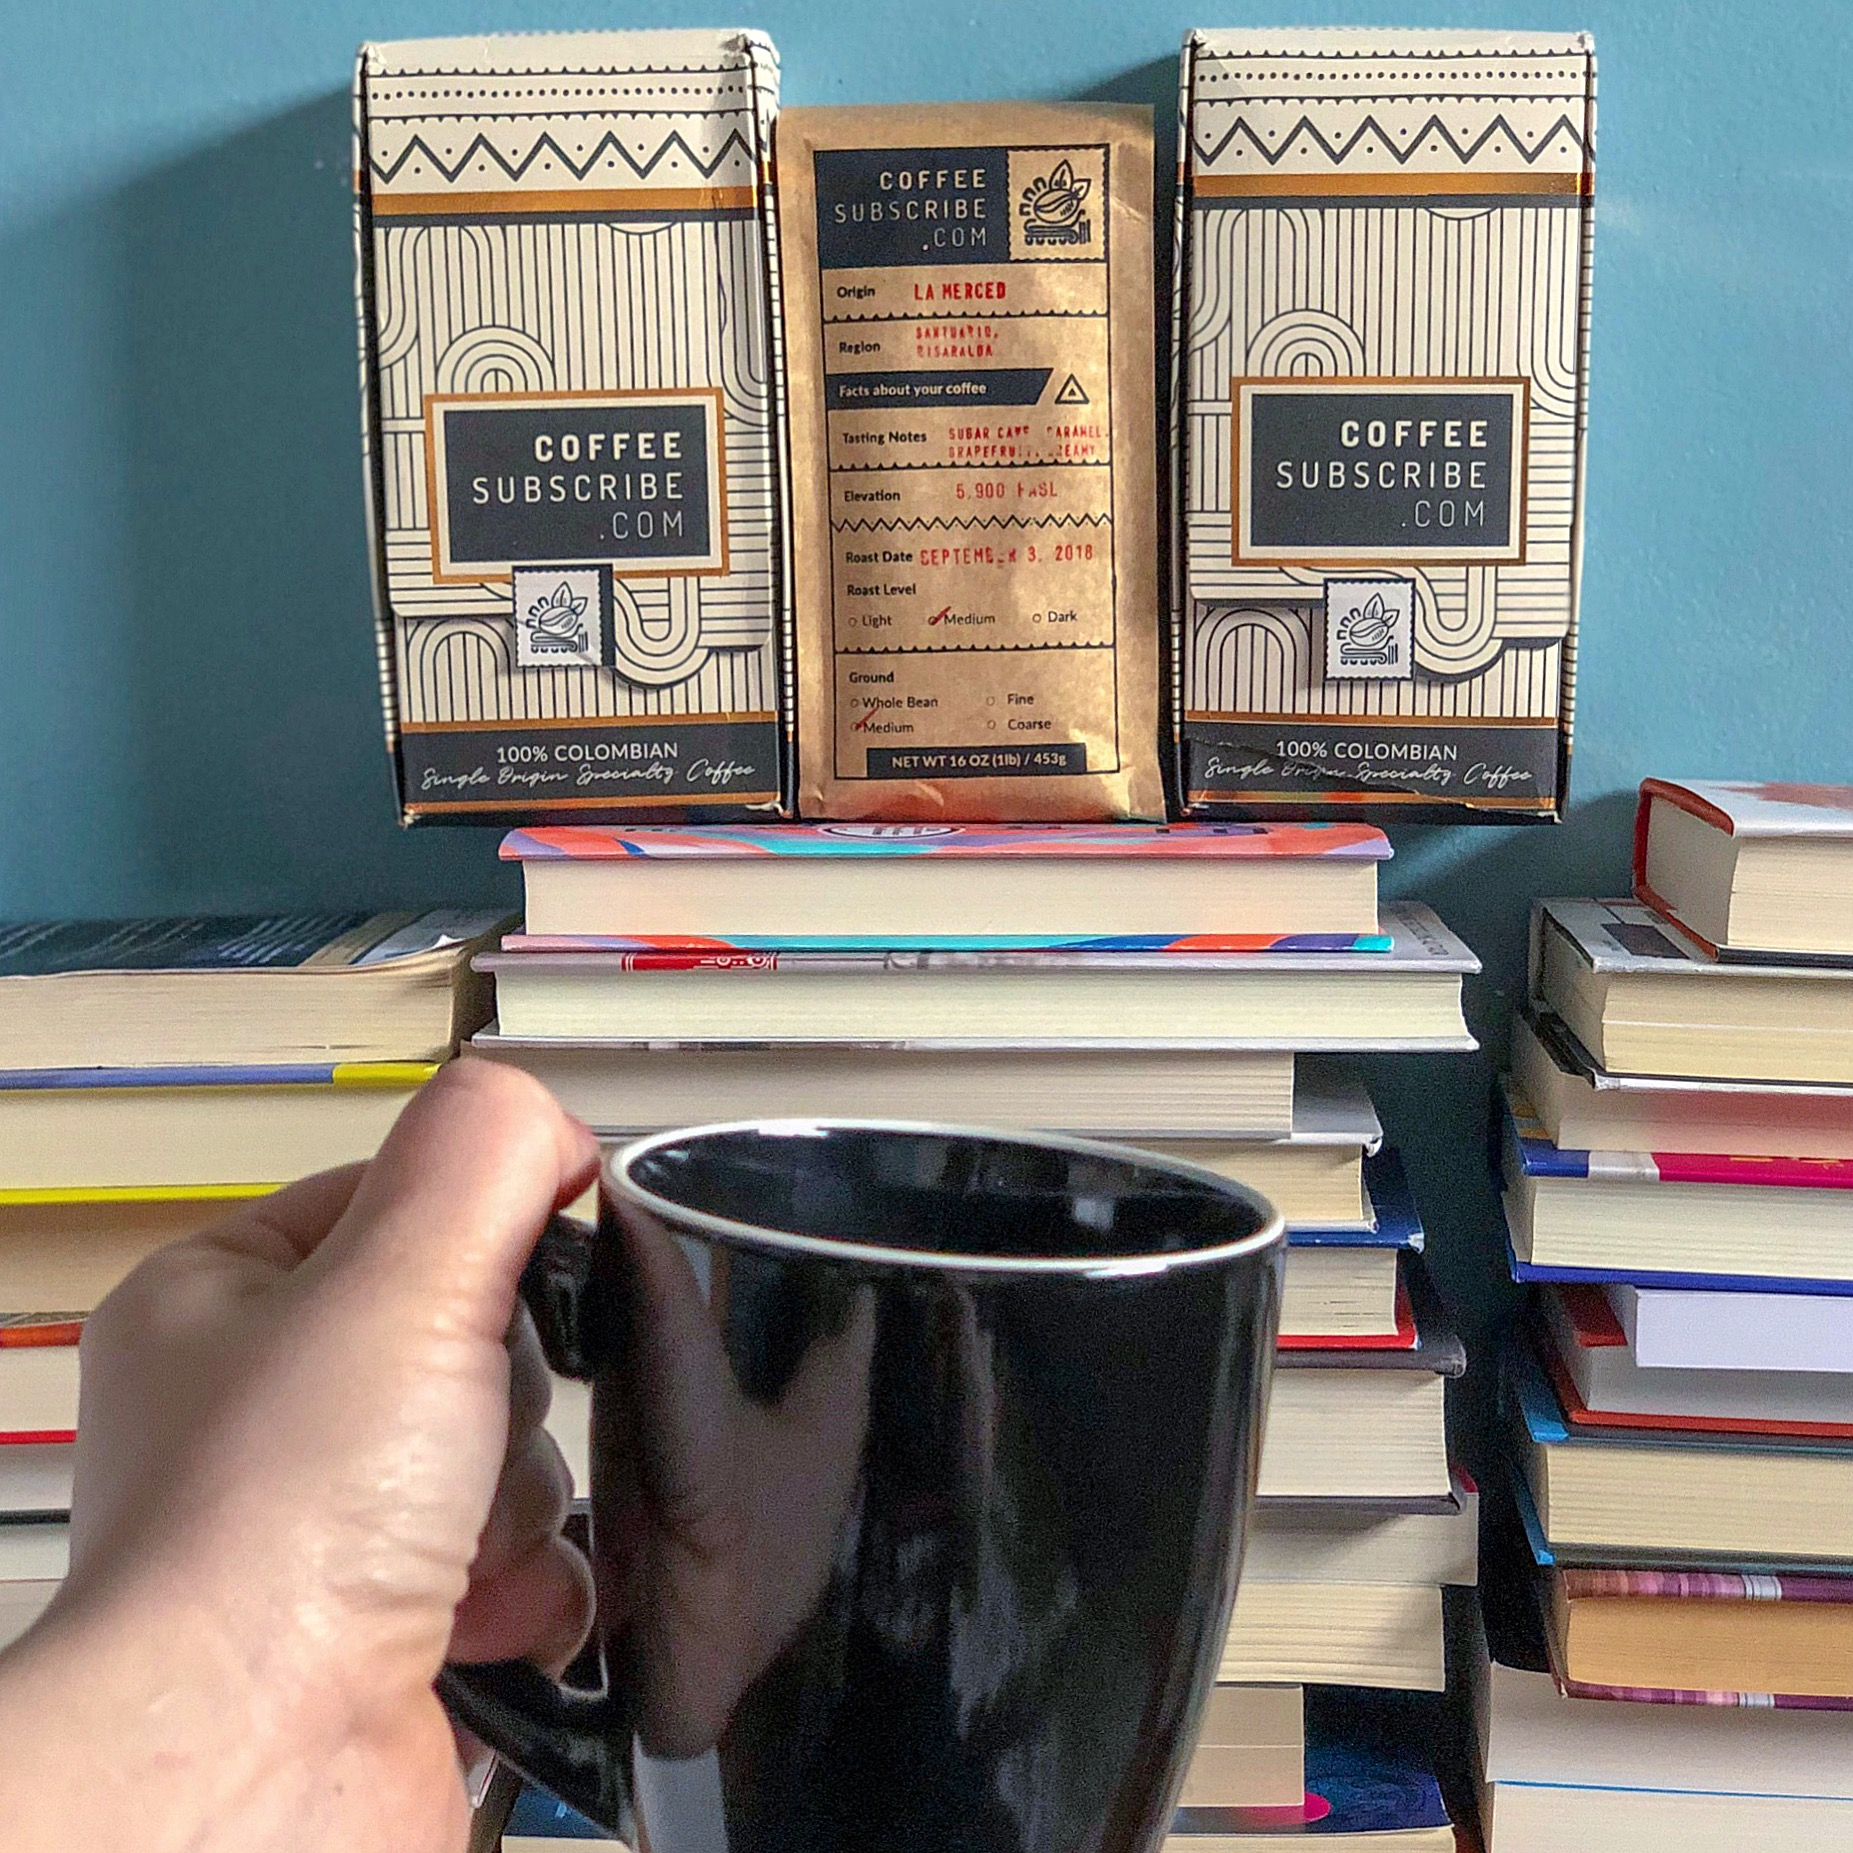 Coffee Subscribe | TBR Etc #coffeesubscription #booksandcoffee